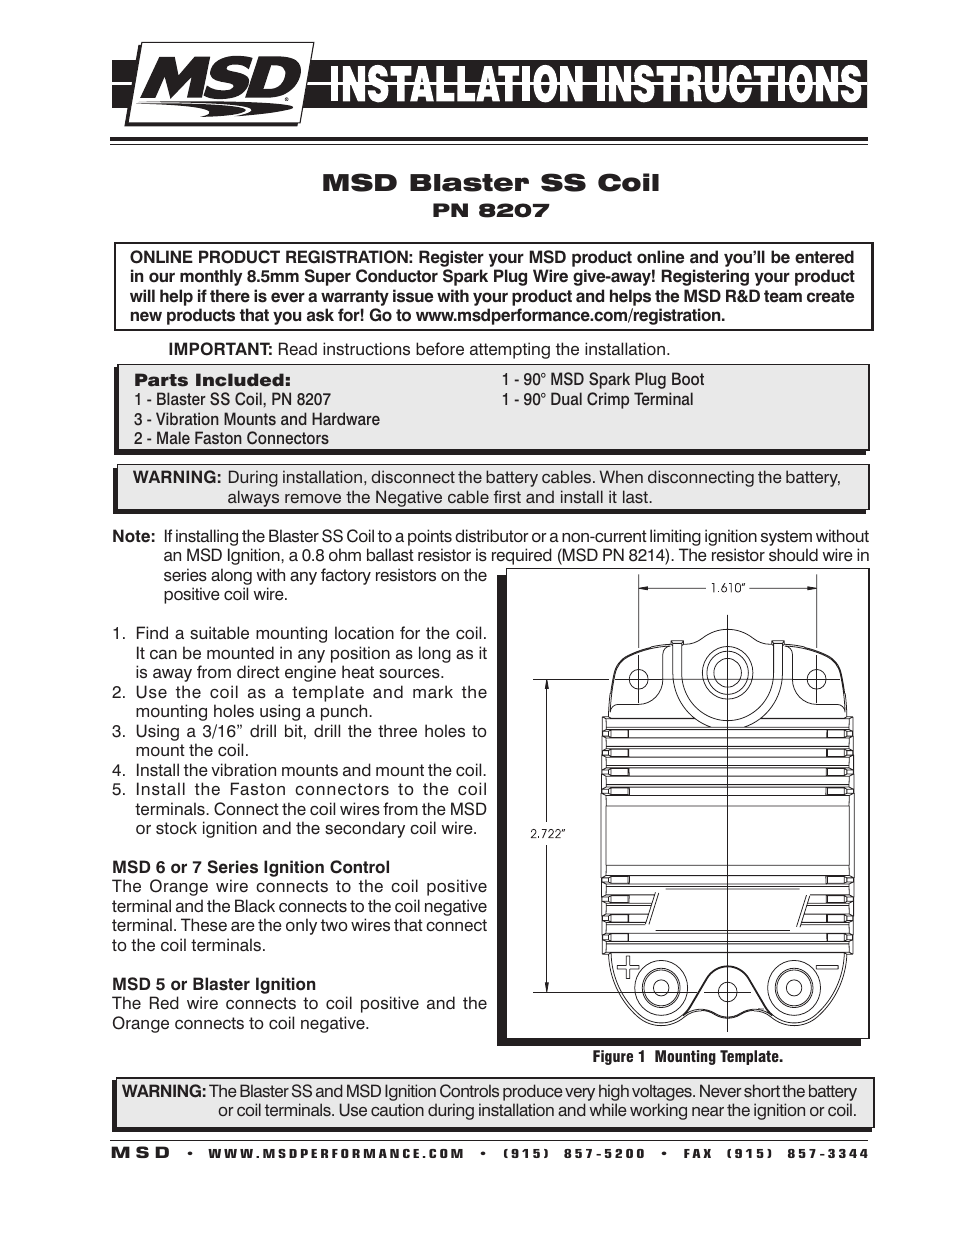 msd 8207 blaster ss coil installation page1?resize\\\\\\\\\\\\\\\\\\\\\\\\\\\\\\\\\\\\\\\\\\\\\\\\\\\\\\\\\\\\\\\\\\\\\\\\\\\\\\\\\\\\\\\\\\\\\\\\\\\\\\\\\\\\\\\=665%2C861 mallory distributor wiring diagram & mallory unilite module wiring mallory comp ss distributor wiring diagram at crackthecode.co